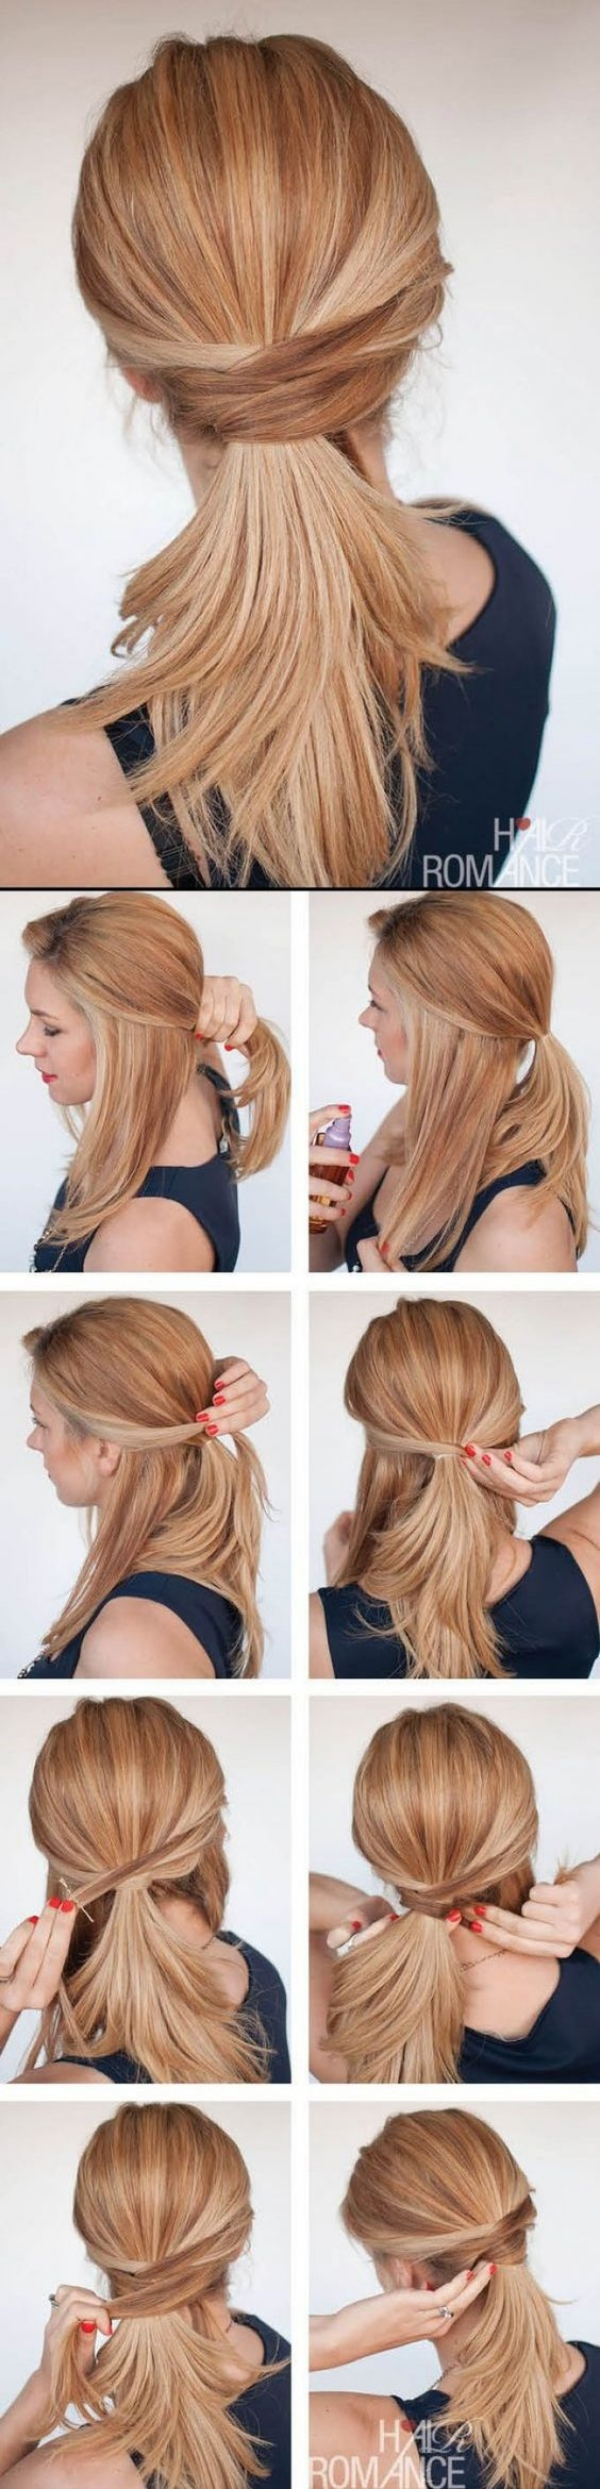 Simple Five Minute Hairstyles00001